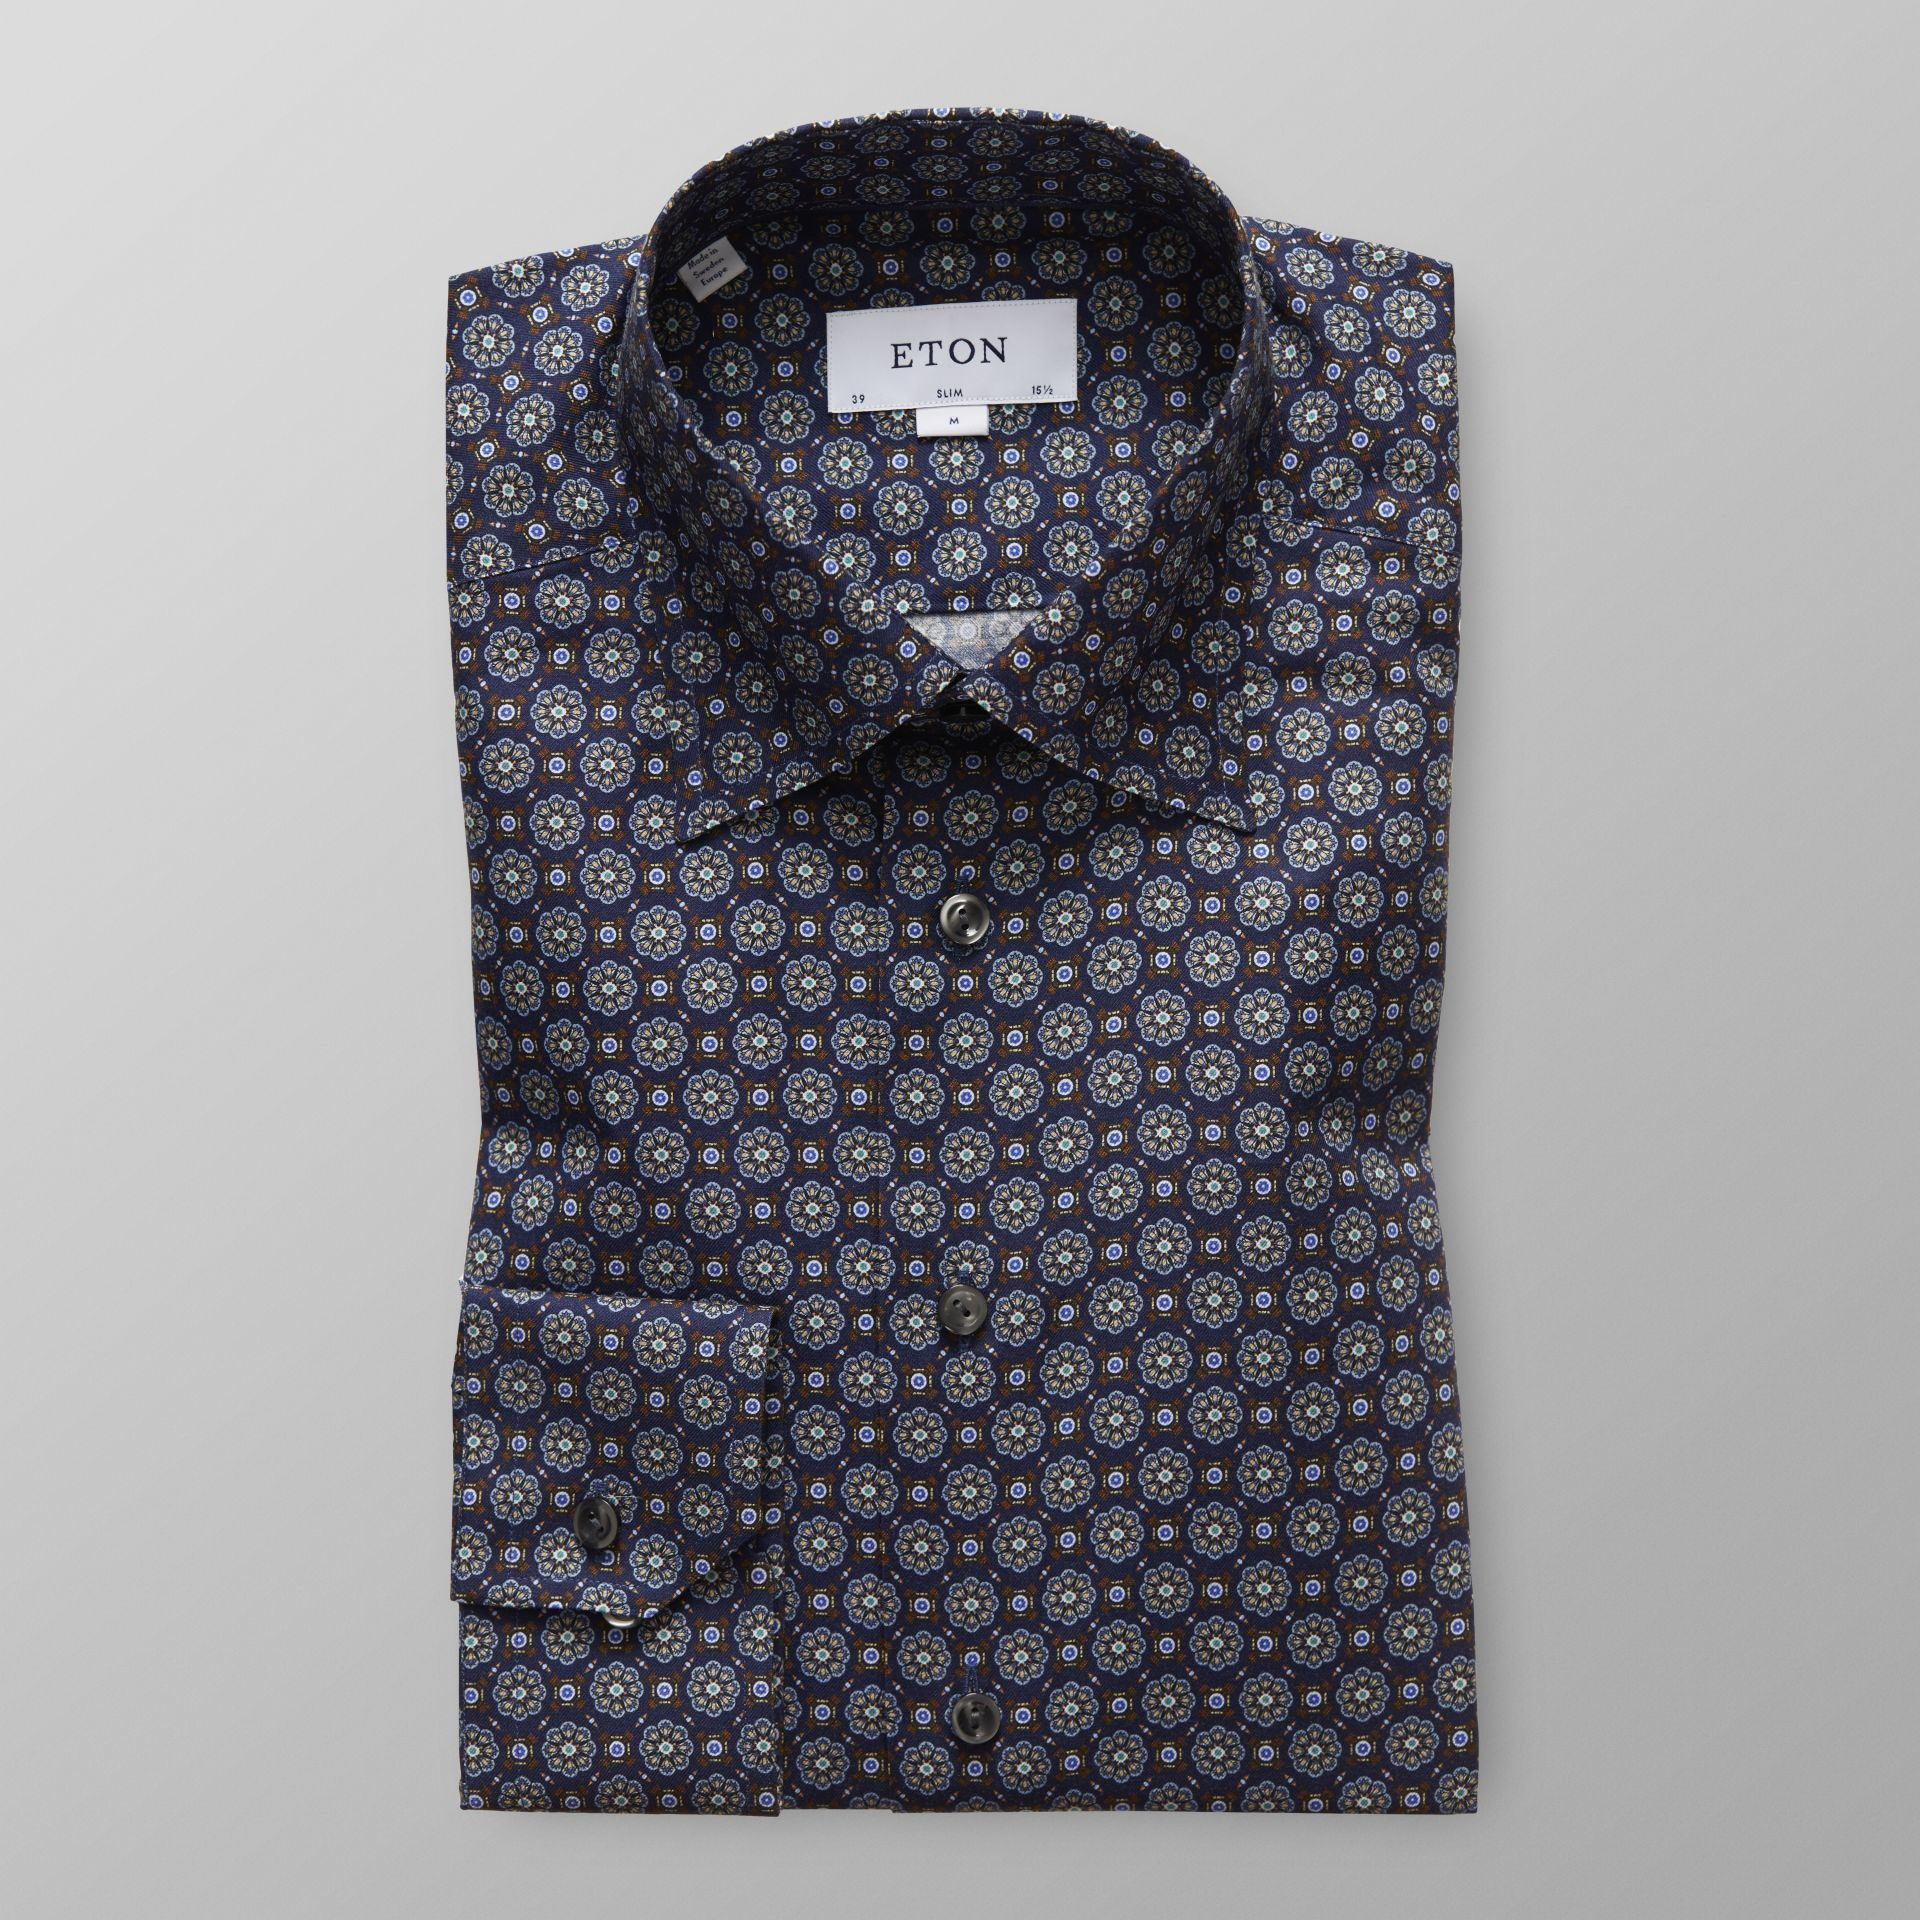 Eton Navy Medallion Print Twill